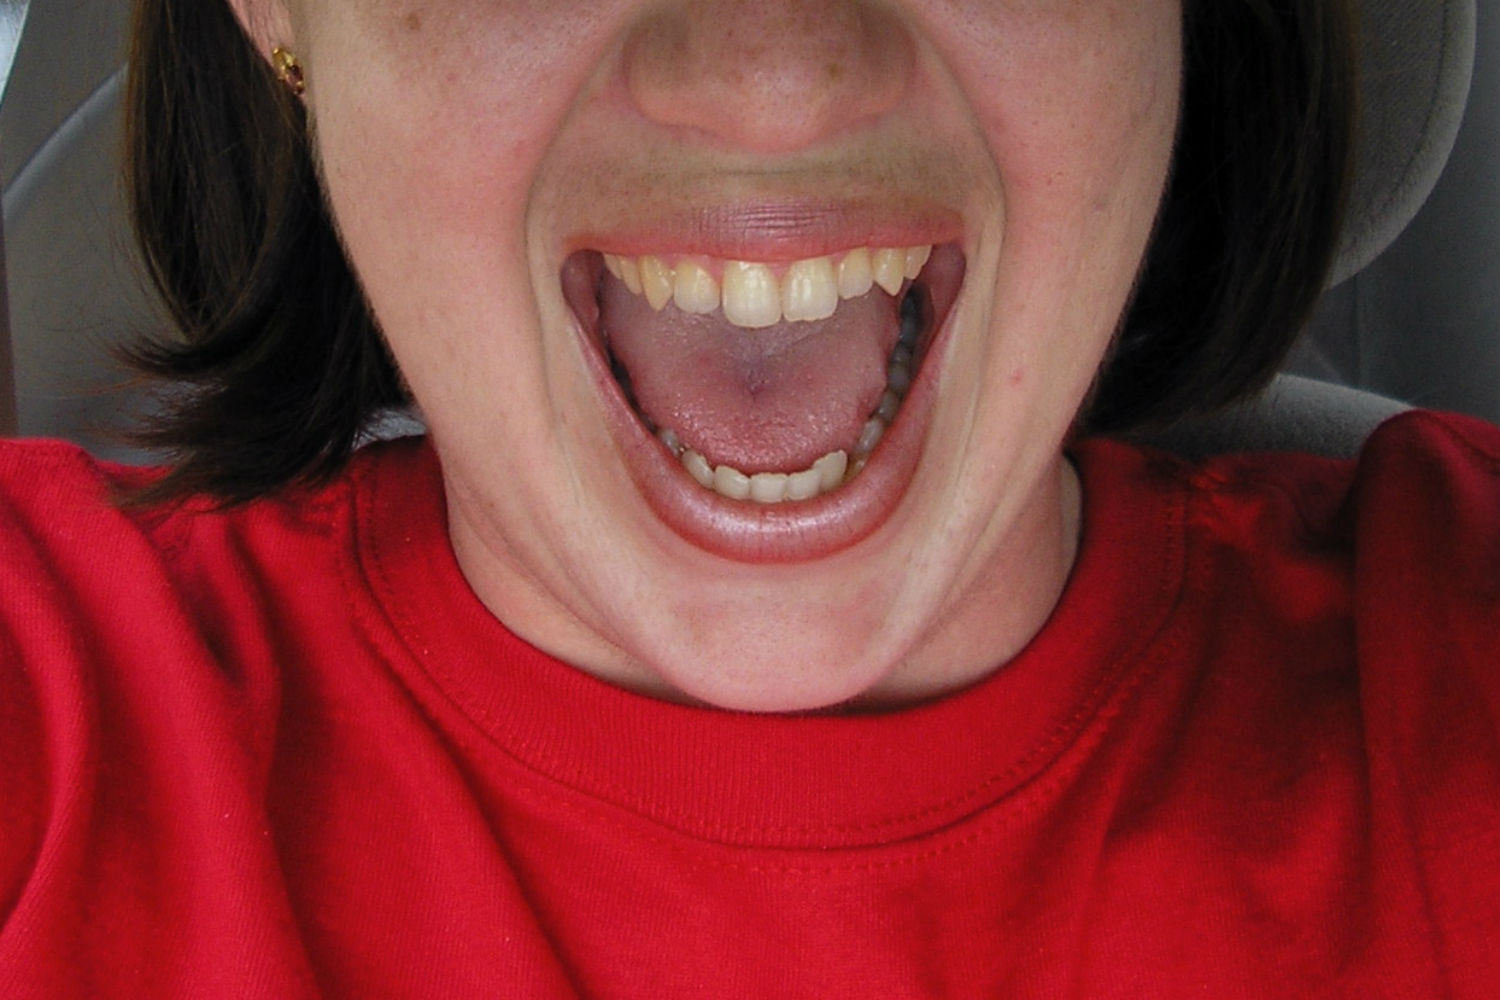 """""""Judy Mouth Open"""" by Jason Nelms Creative Commons"""